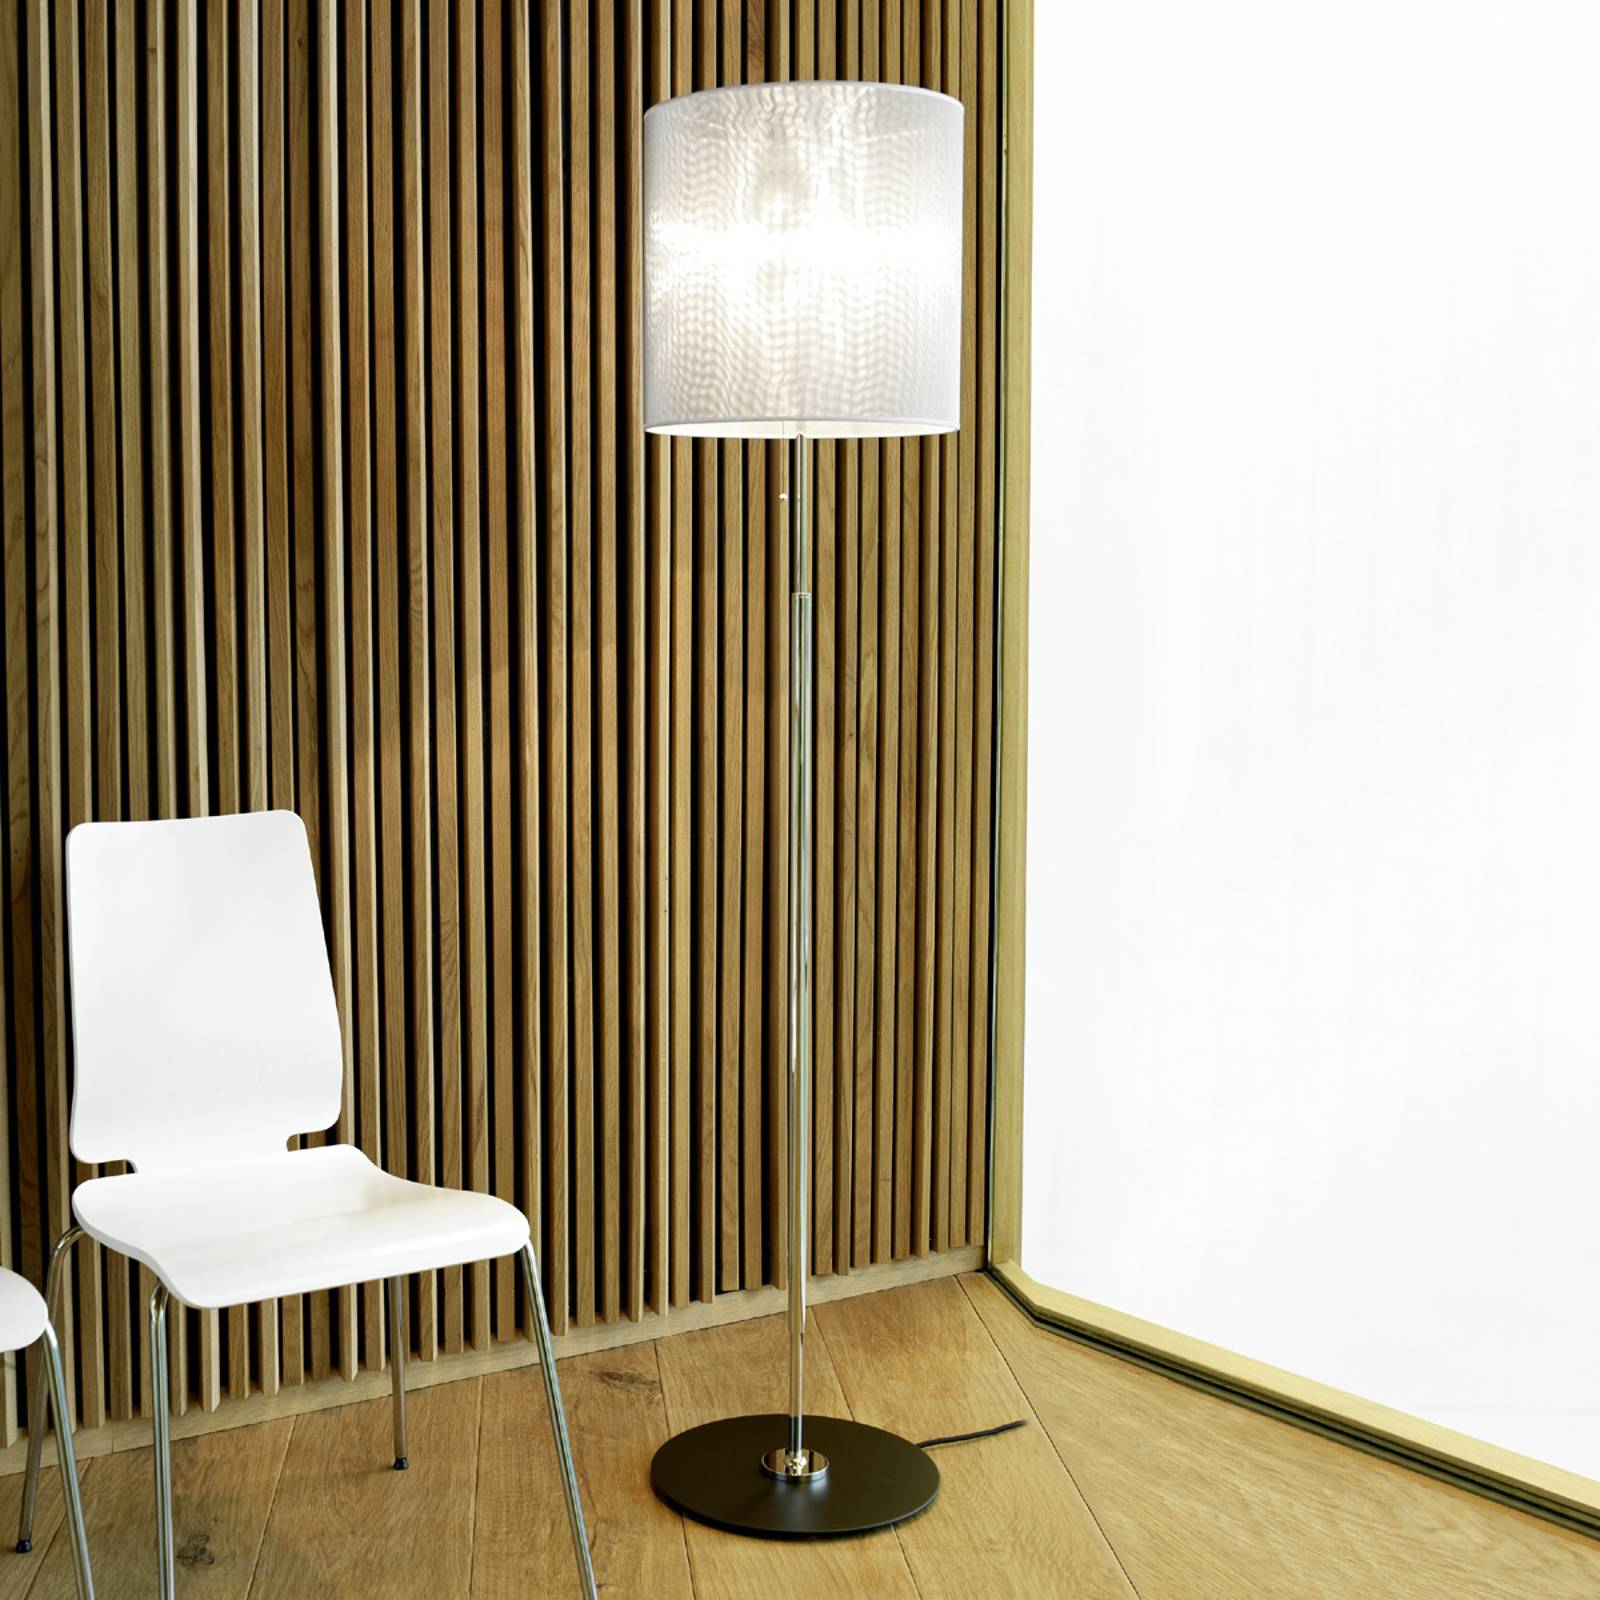 Striking designer floor lamp from Tecnolumen